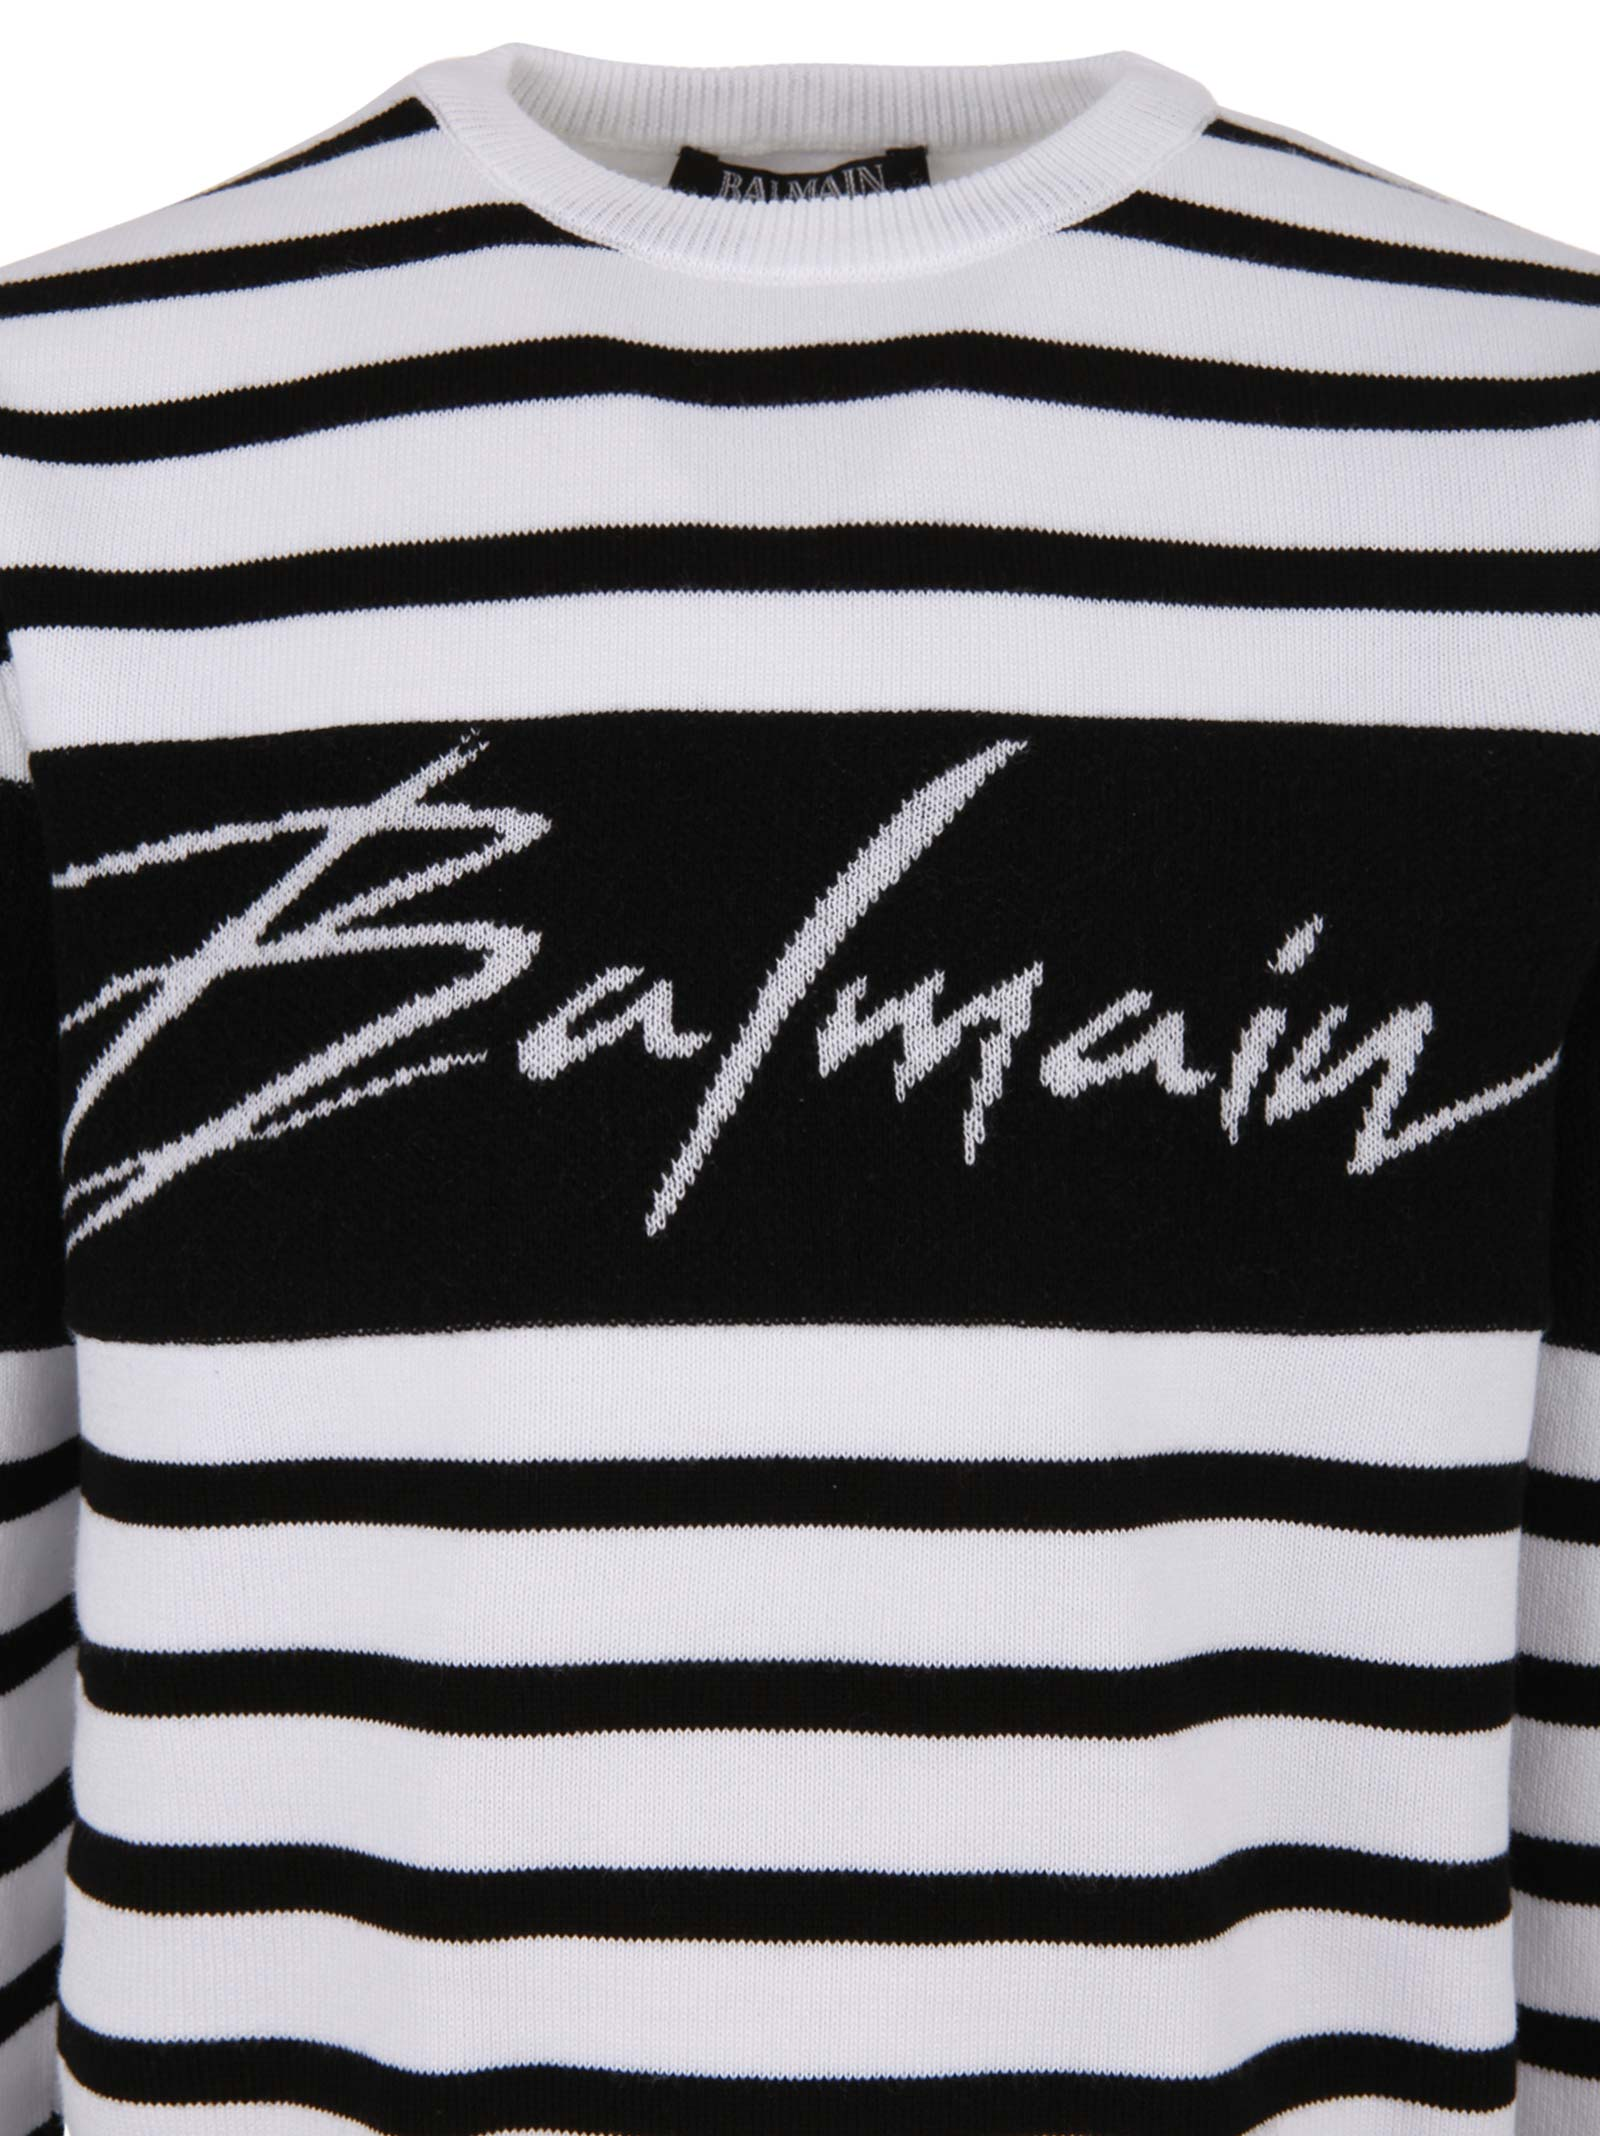 57dde0ed7 Balmain Paris Kids sweatshirt - BALMAIN PARIS KIDS - Michele ...